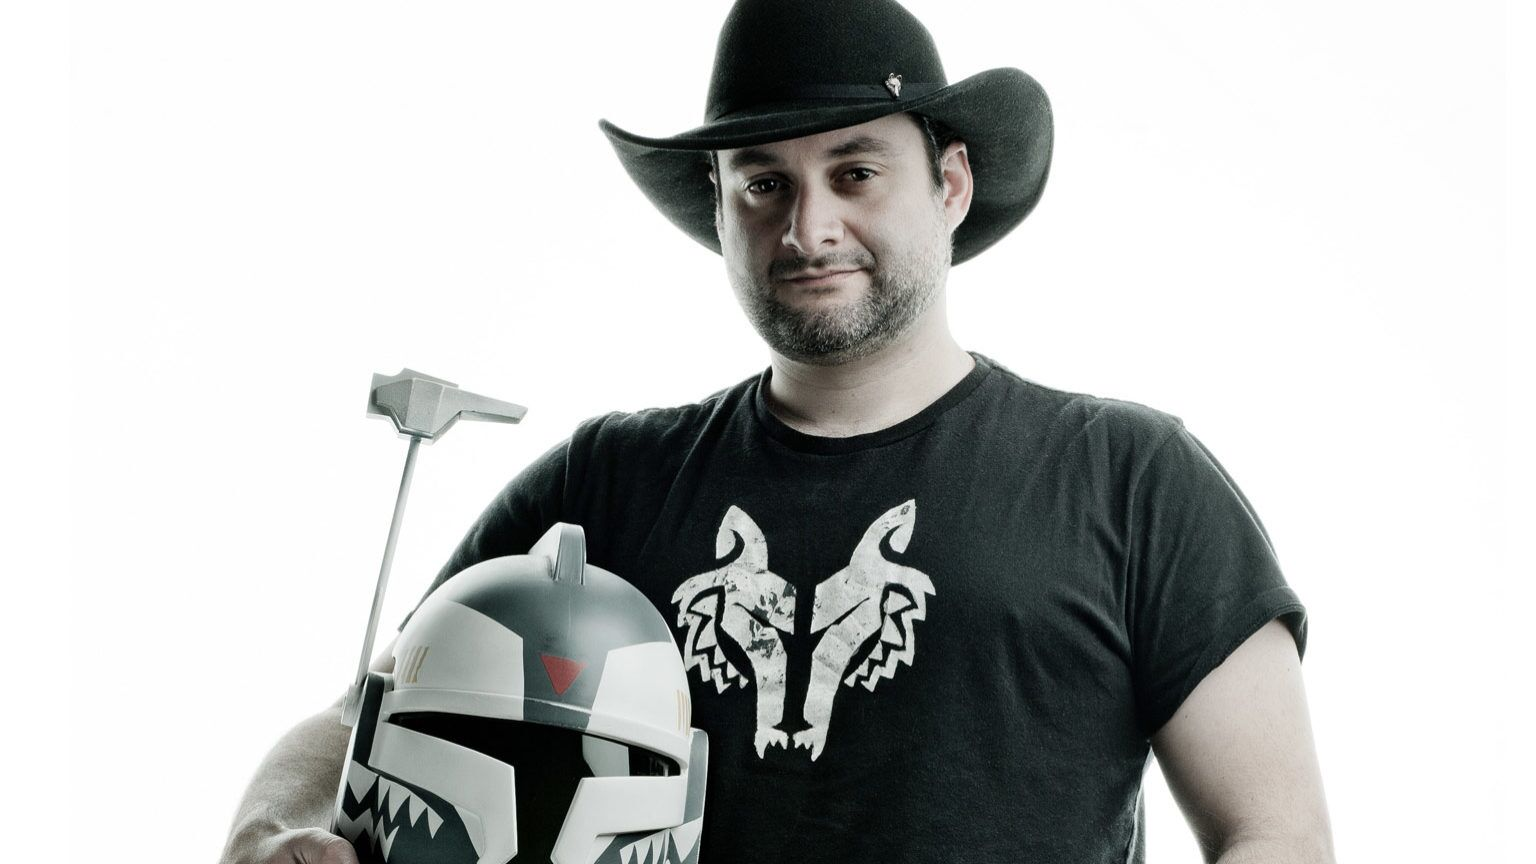 Dave Filoni, the future of Star Wars and one of the people behind the Mandalorian